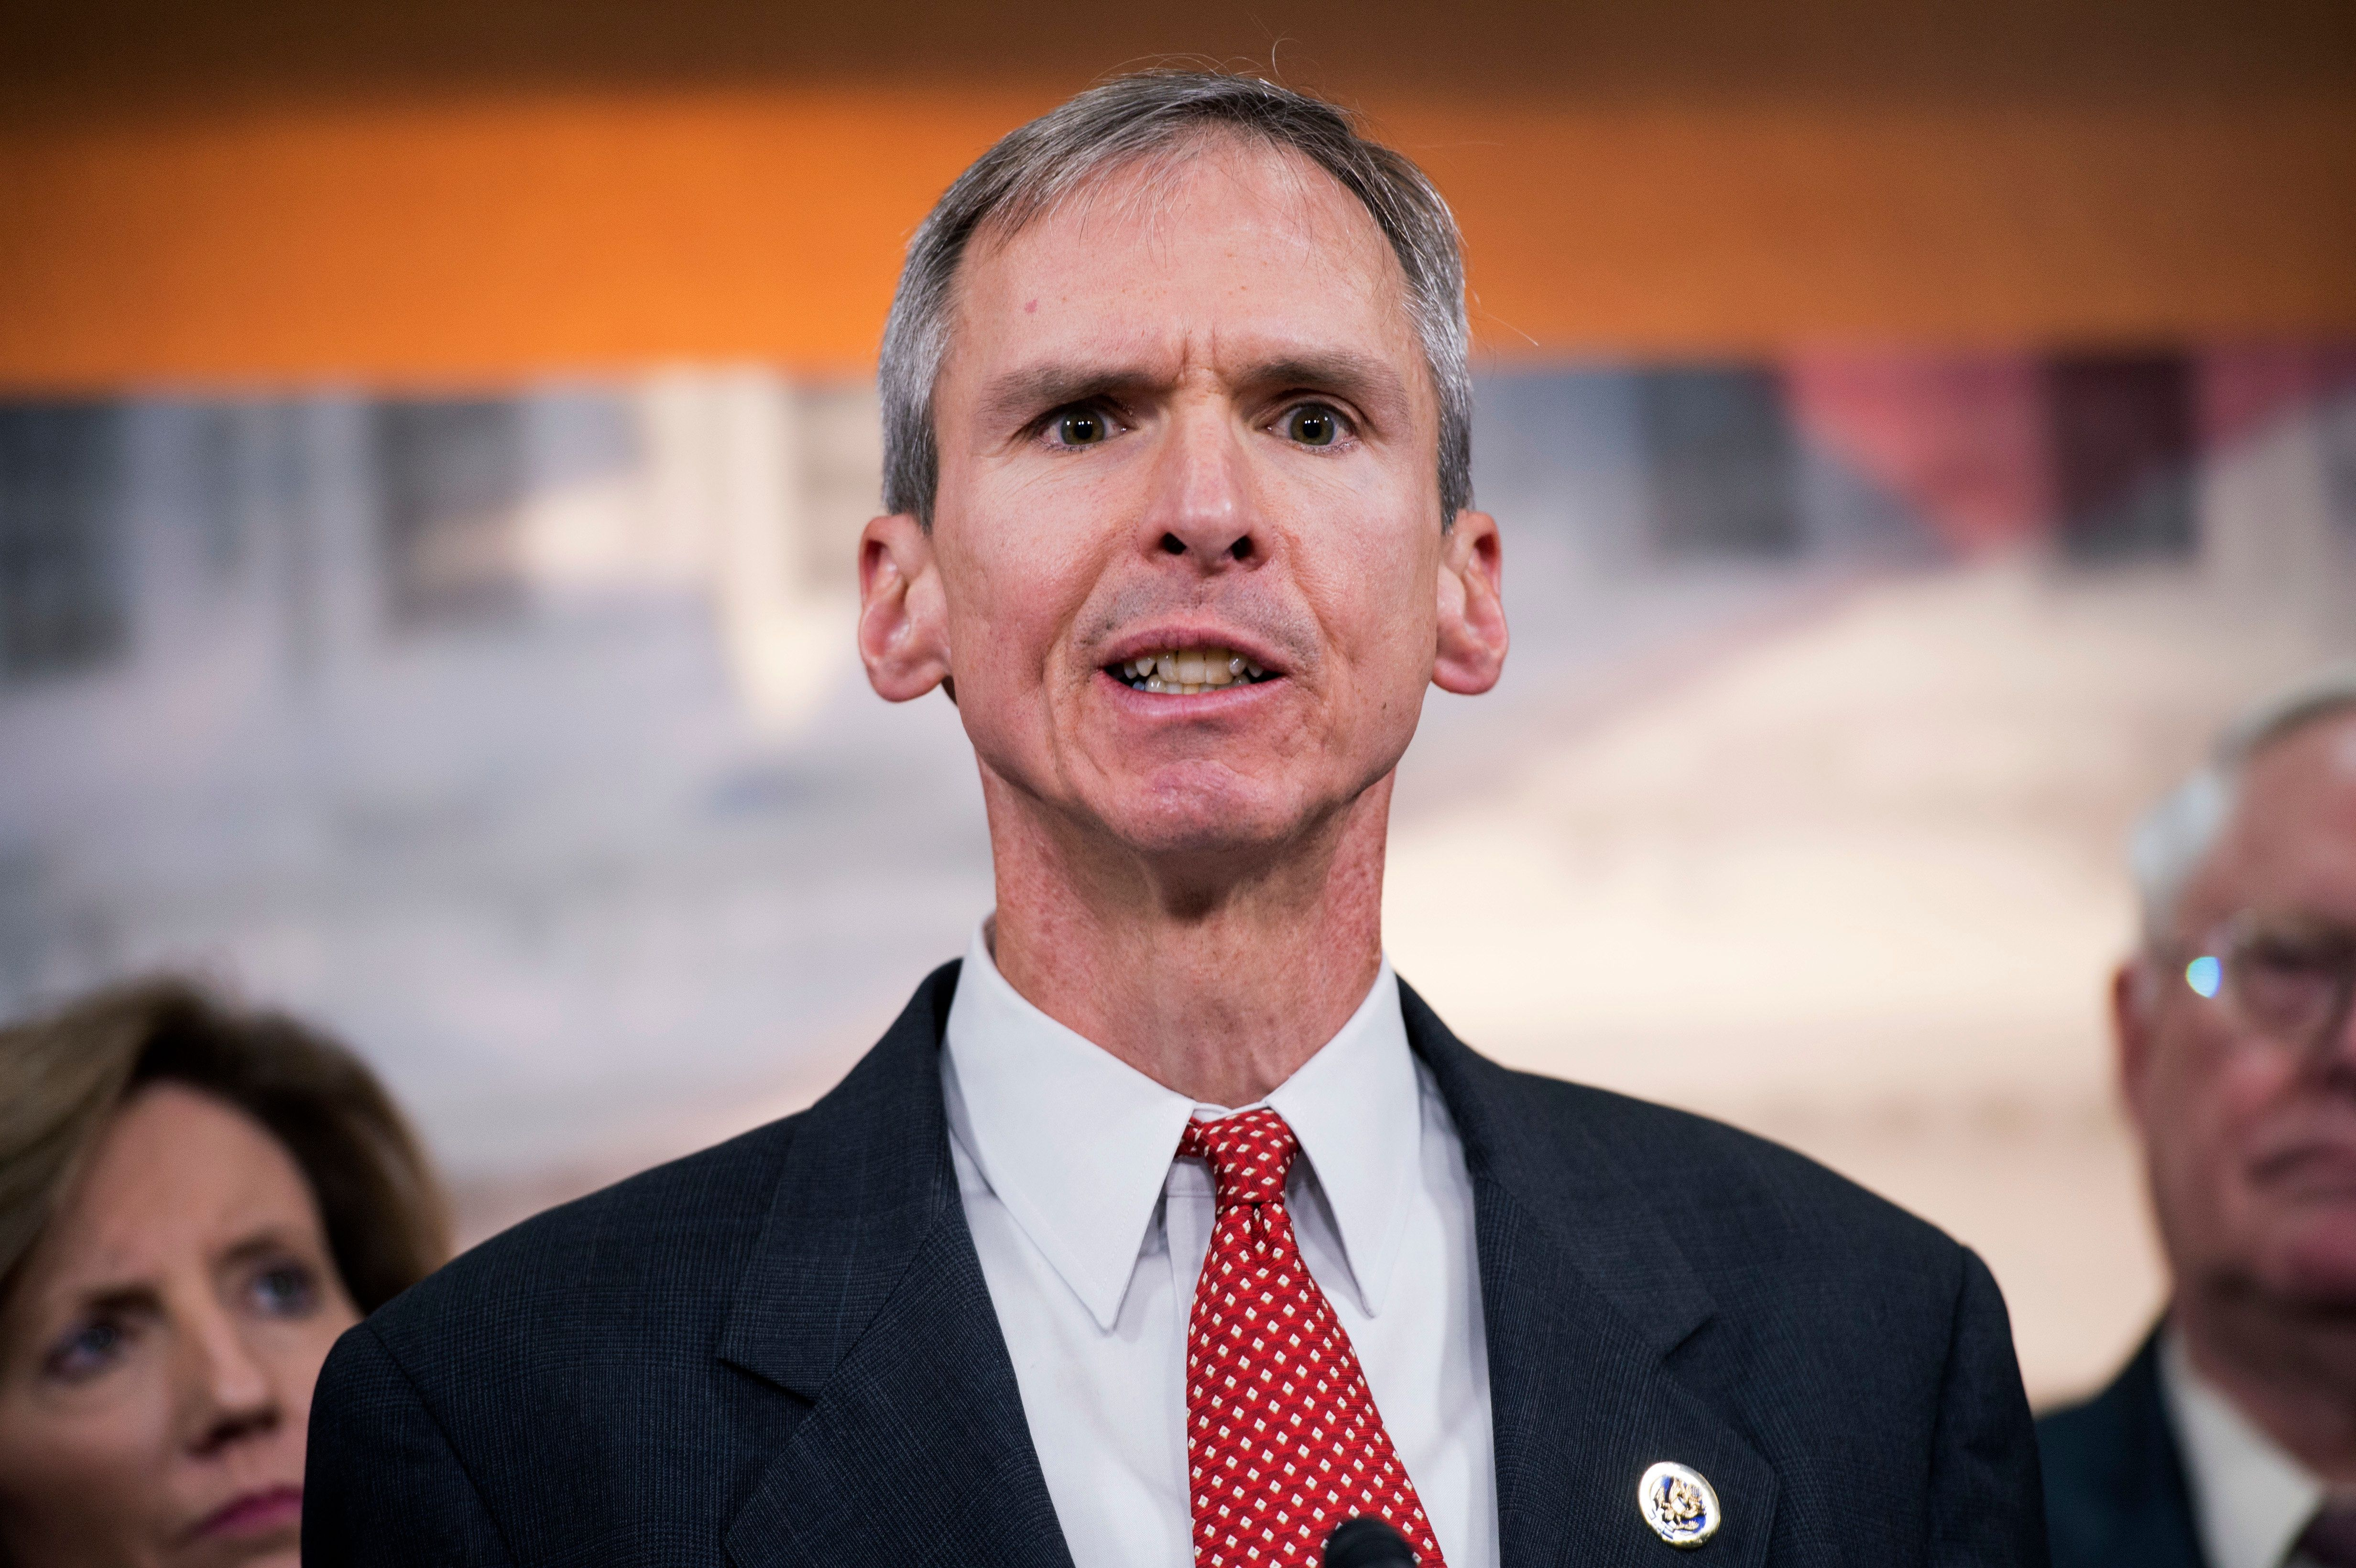 Rep. Dan Lipinski (D-Ill.) is facing a challenge from businesswoman Marie Newman in the Democratic primary.